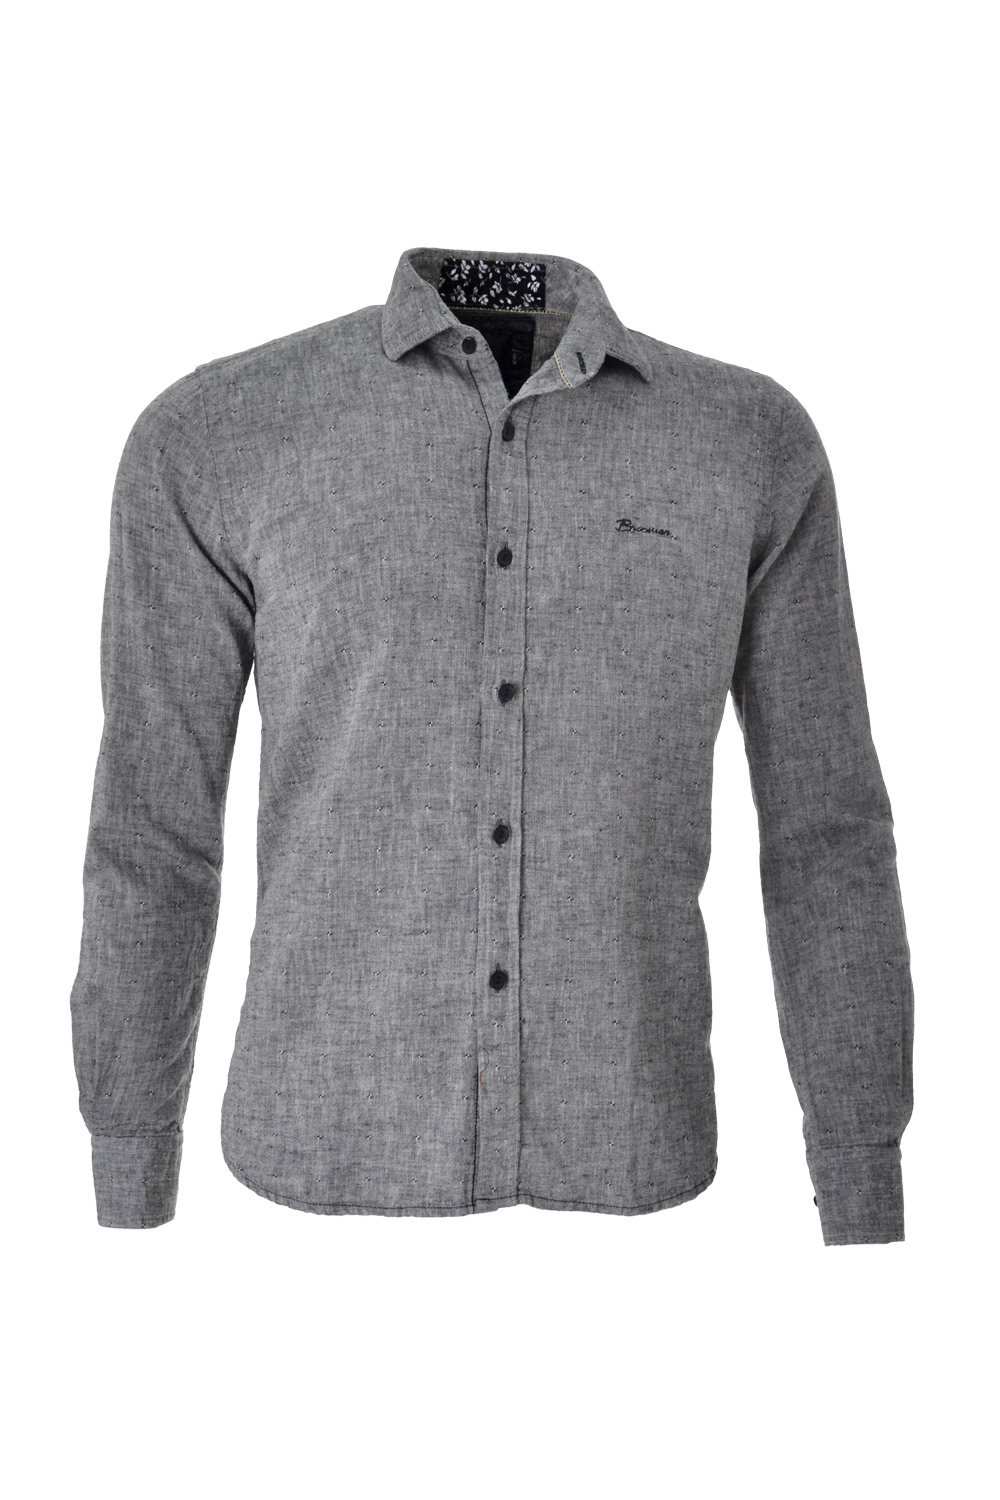 CAMISA ML BLUES ALGODAO LINHO TRENDY MAQUINETADA SHADOW